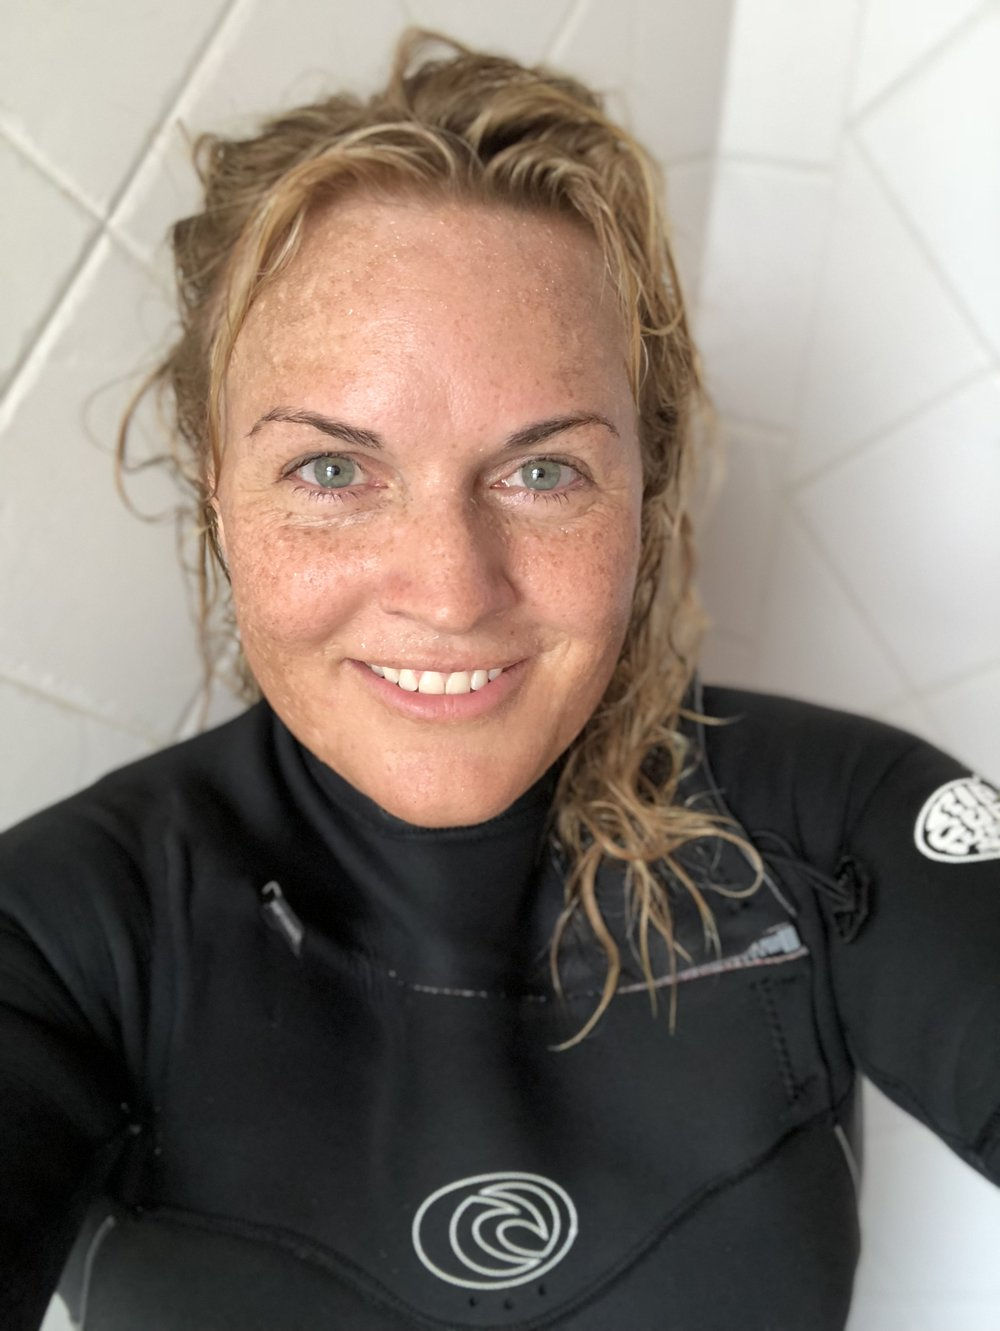 No filter, no waves, no worries: a post-surf selfie to mark this morning's realization